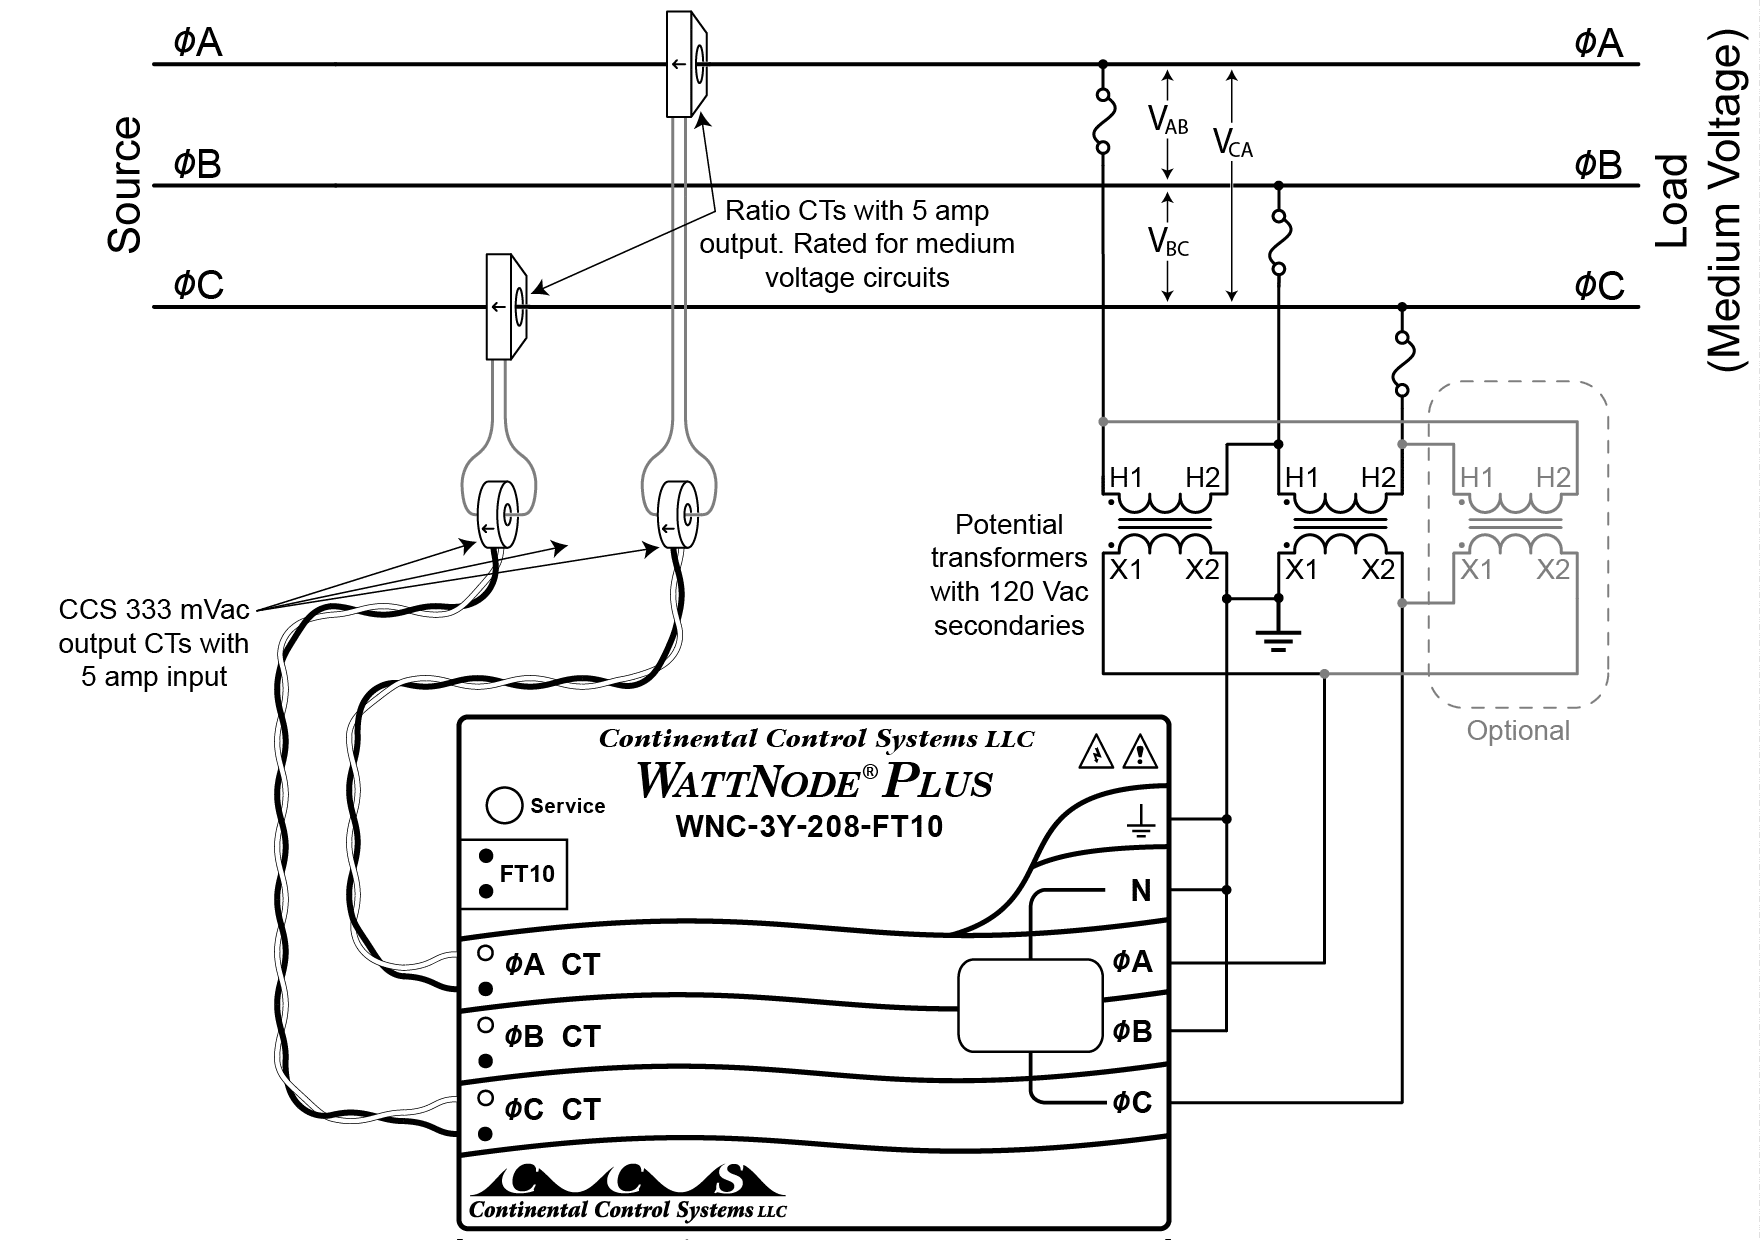 olsun transformer wiring diagram with Olsun Transformer Wiring Diagram on Olsun Transformer Wiring Diagram together with